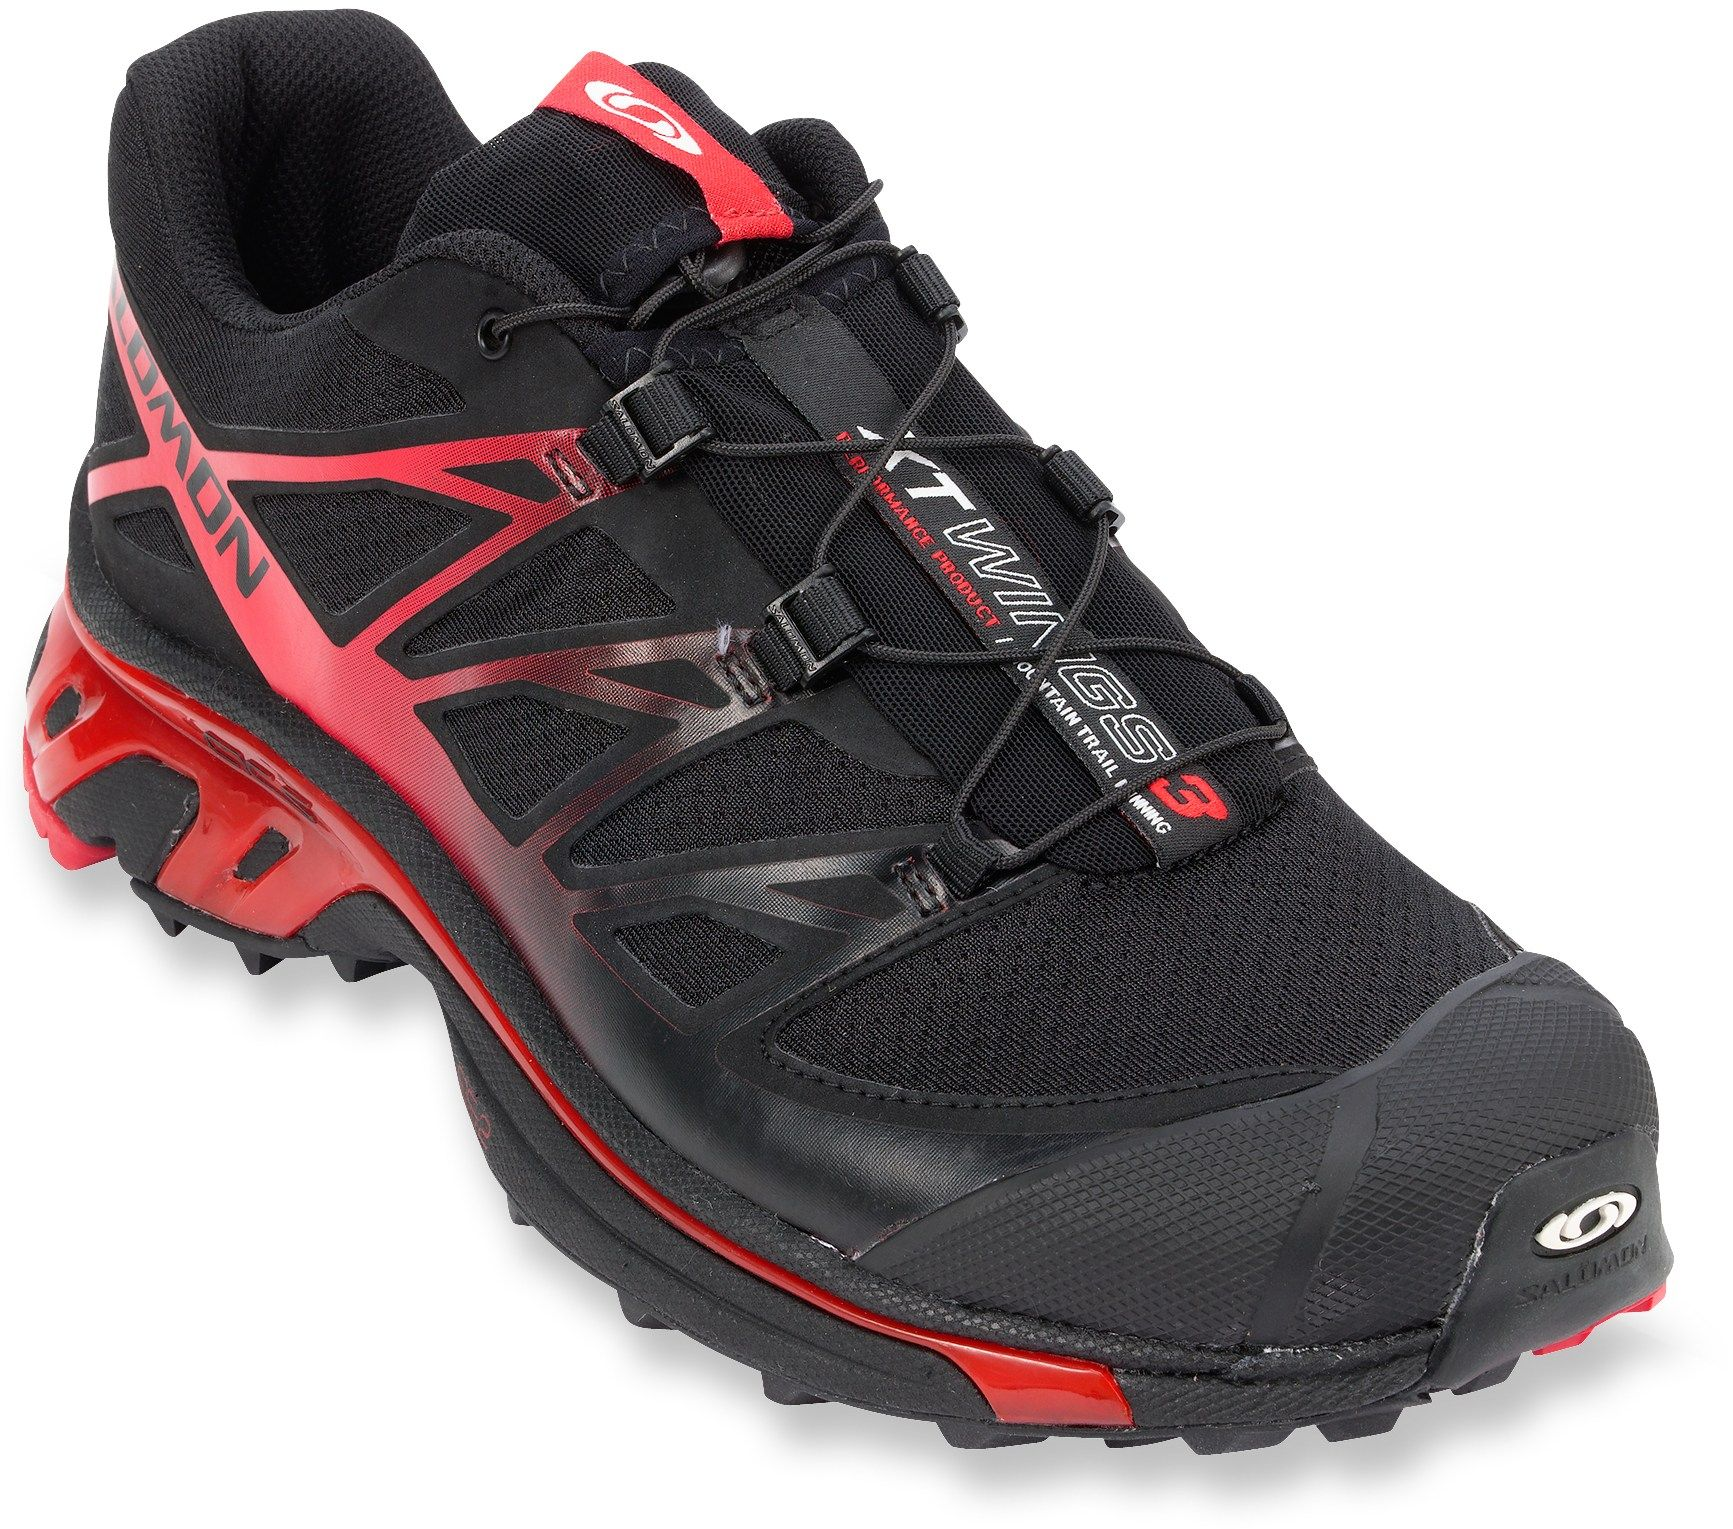 the best attitude 736e9 3d80d Salomon XT Wings 3 Trail-Running Shoes - Men s - Free Shipping at REI.com